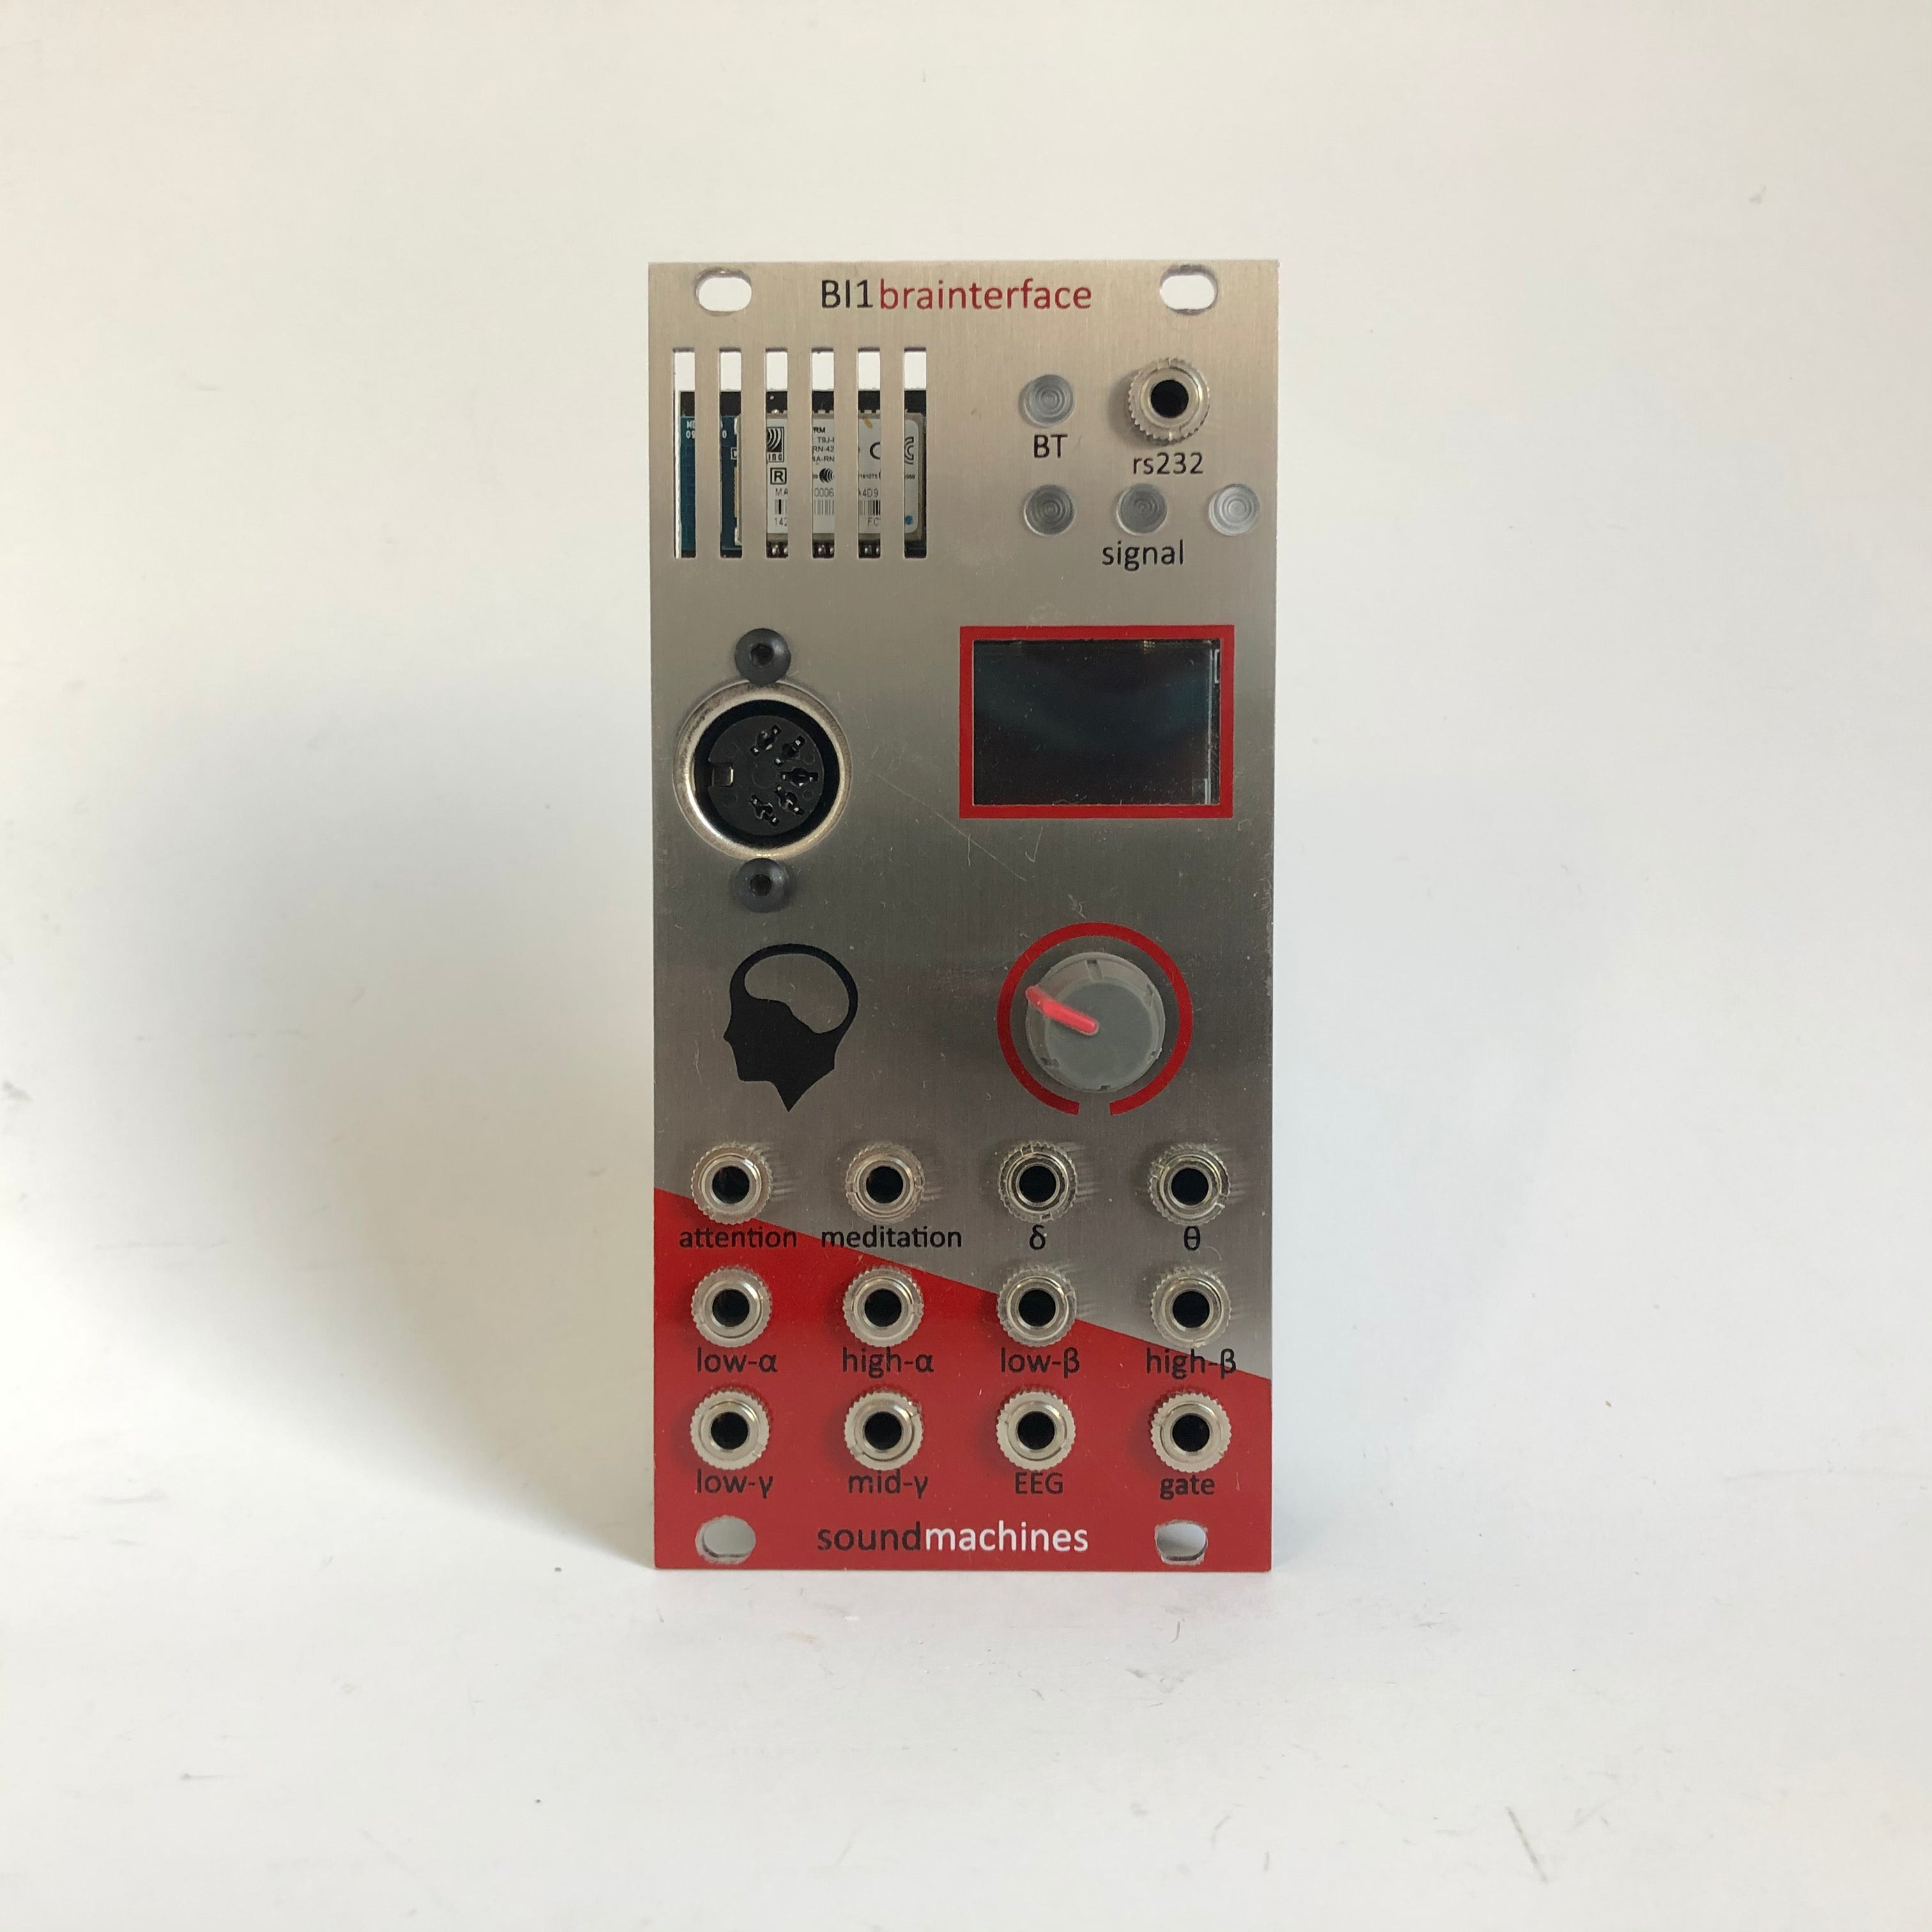 soundmachines BI1 Brainterface with Headset